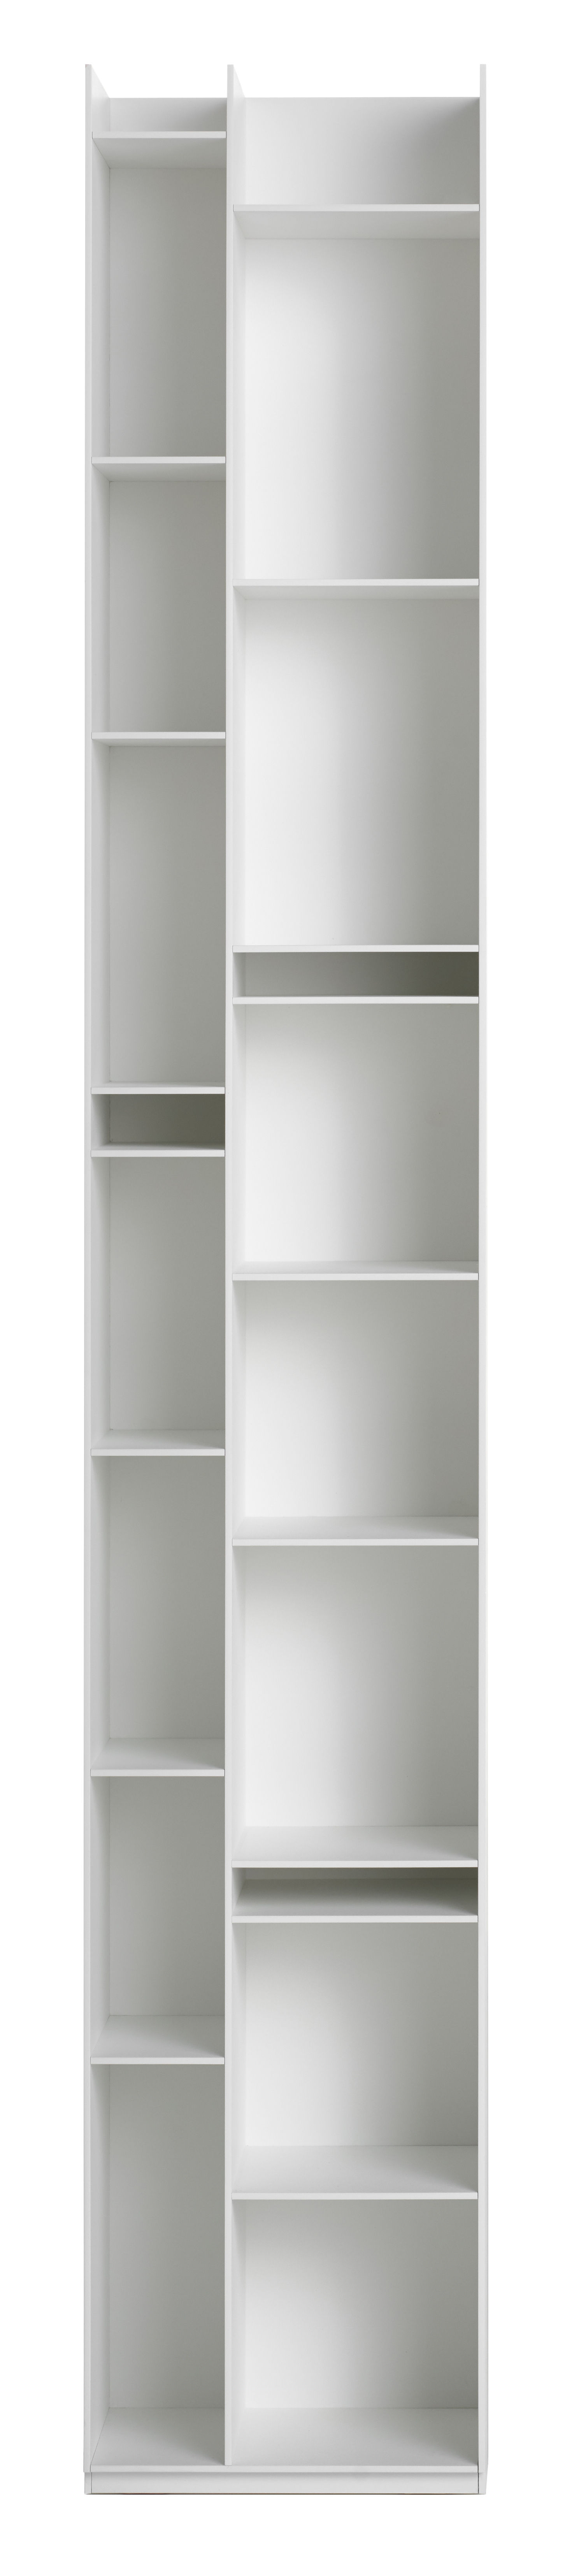 Furniture - Bookcases & Bookshelves - Random 2C Bookcase - L 36 x H 217 cm by MDF Italia - White - Wood fibre